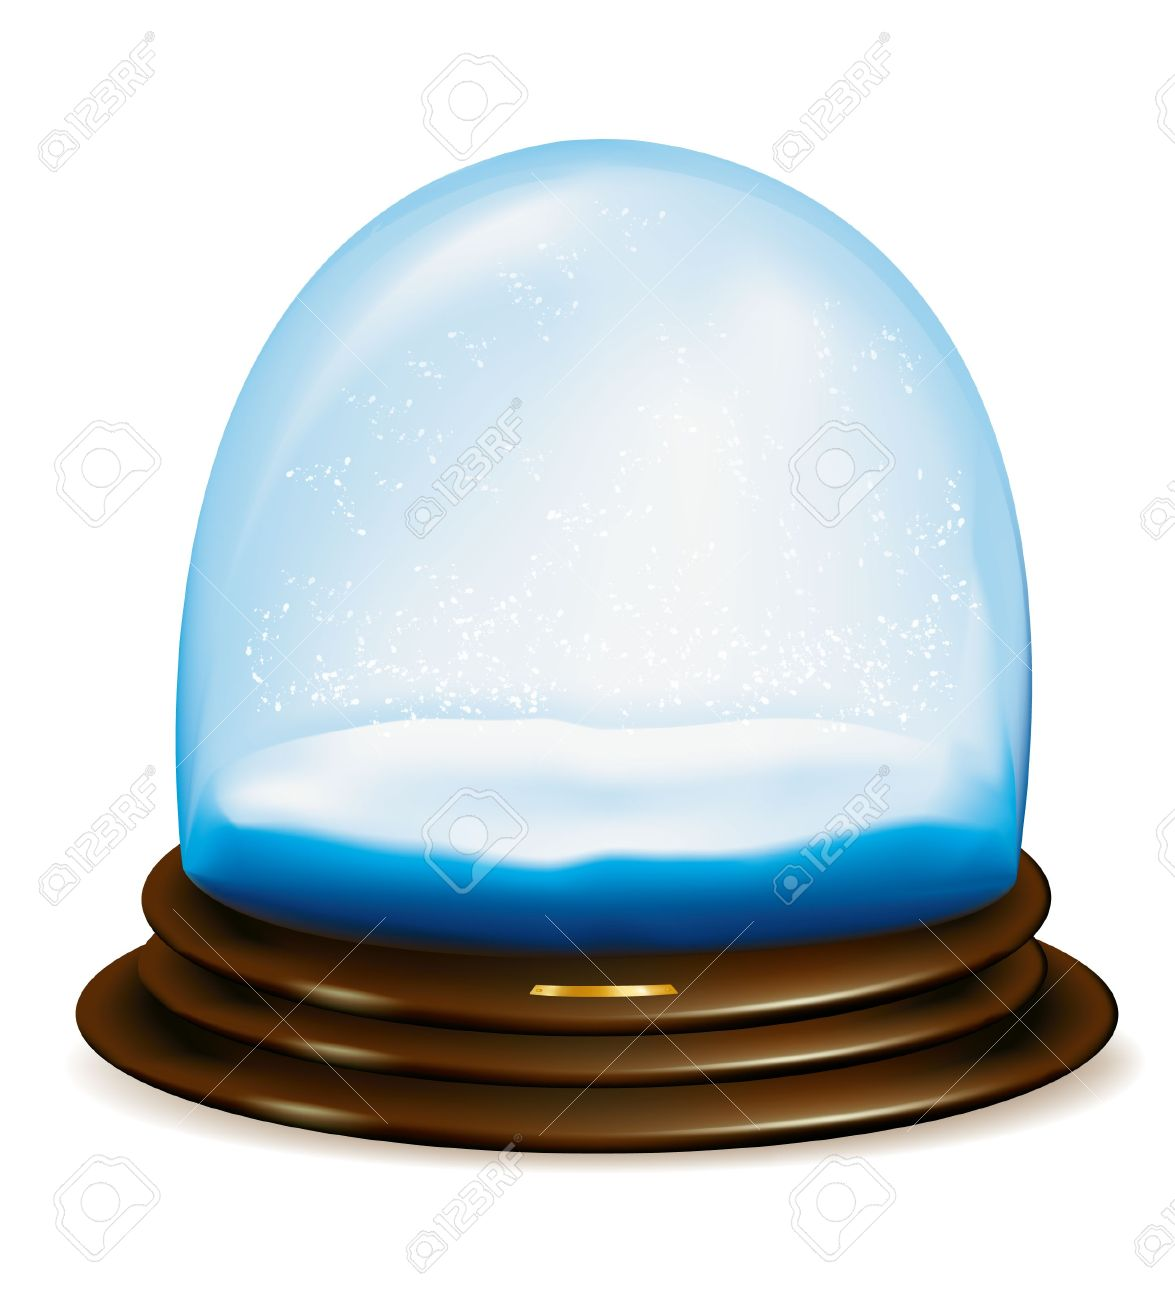 Empty Snow Dome Over White Background.illustration Royalty Free.